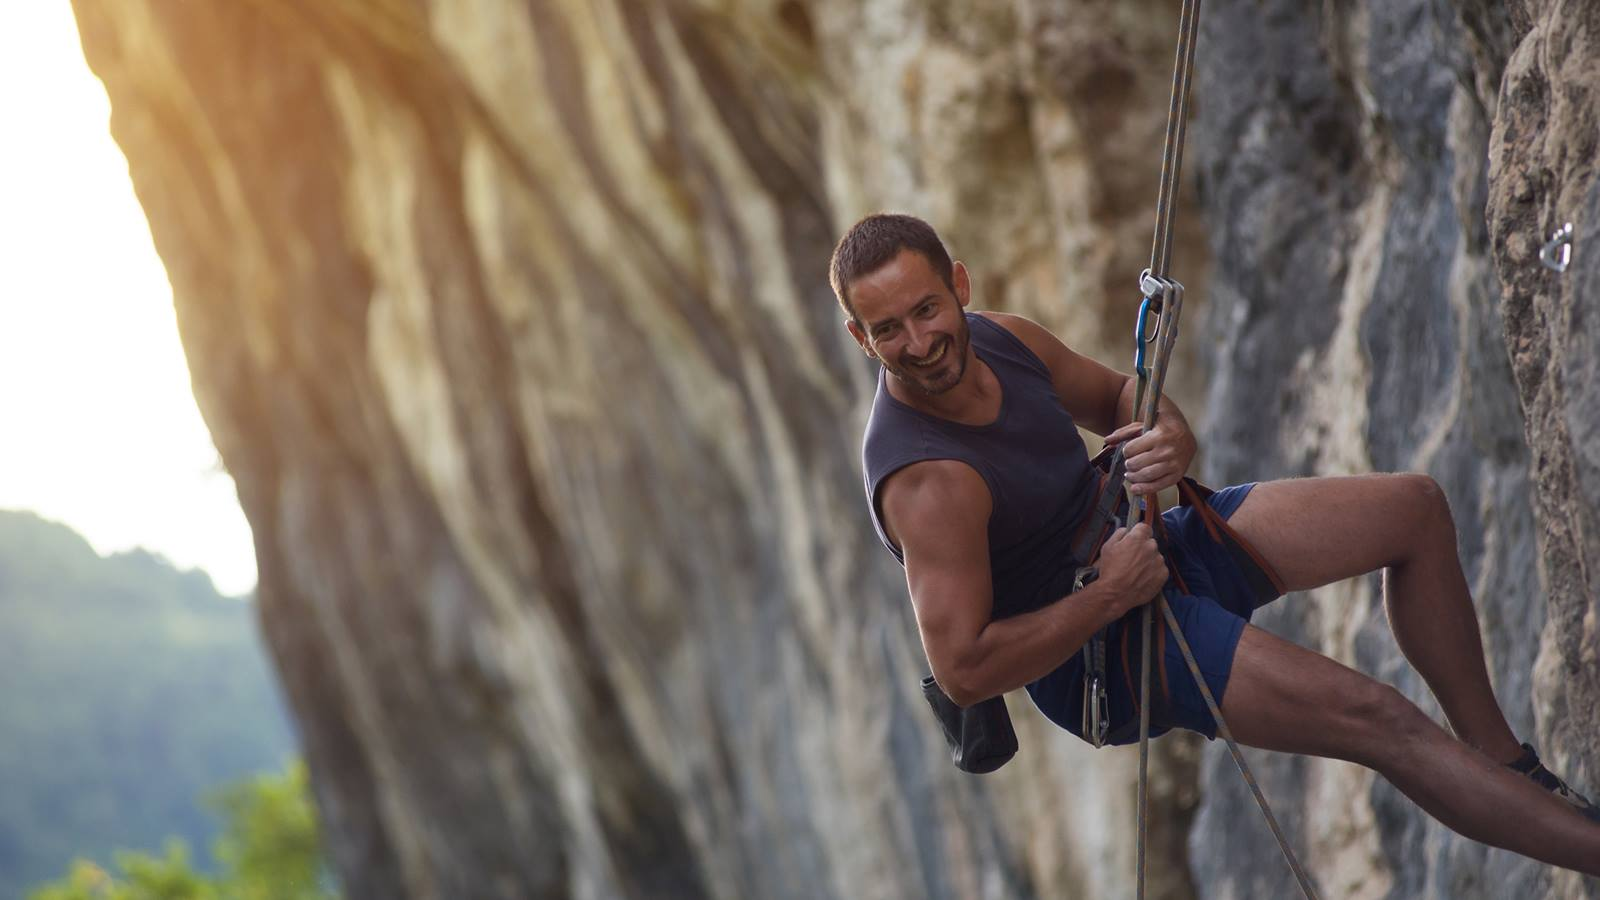 The 7 Commandments to Avoid Climbing Injuries